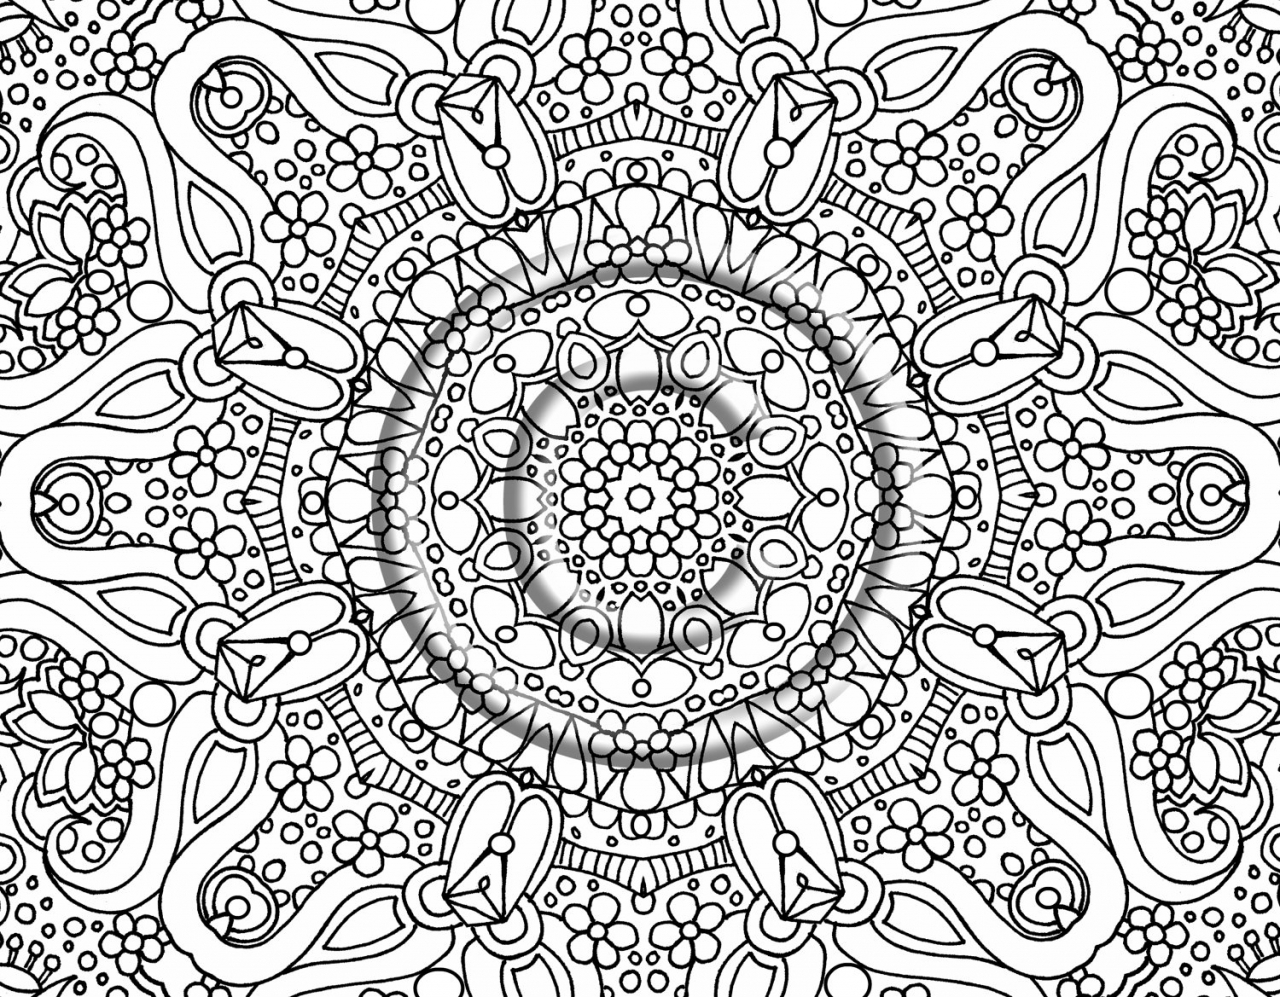 challenging coloring sheets printable difficult coloring pages coloring home sheets coloring challenging